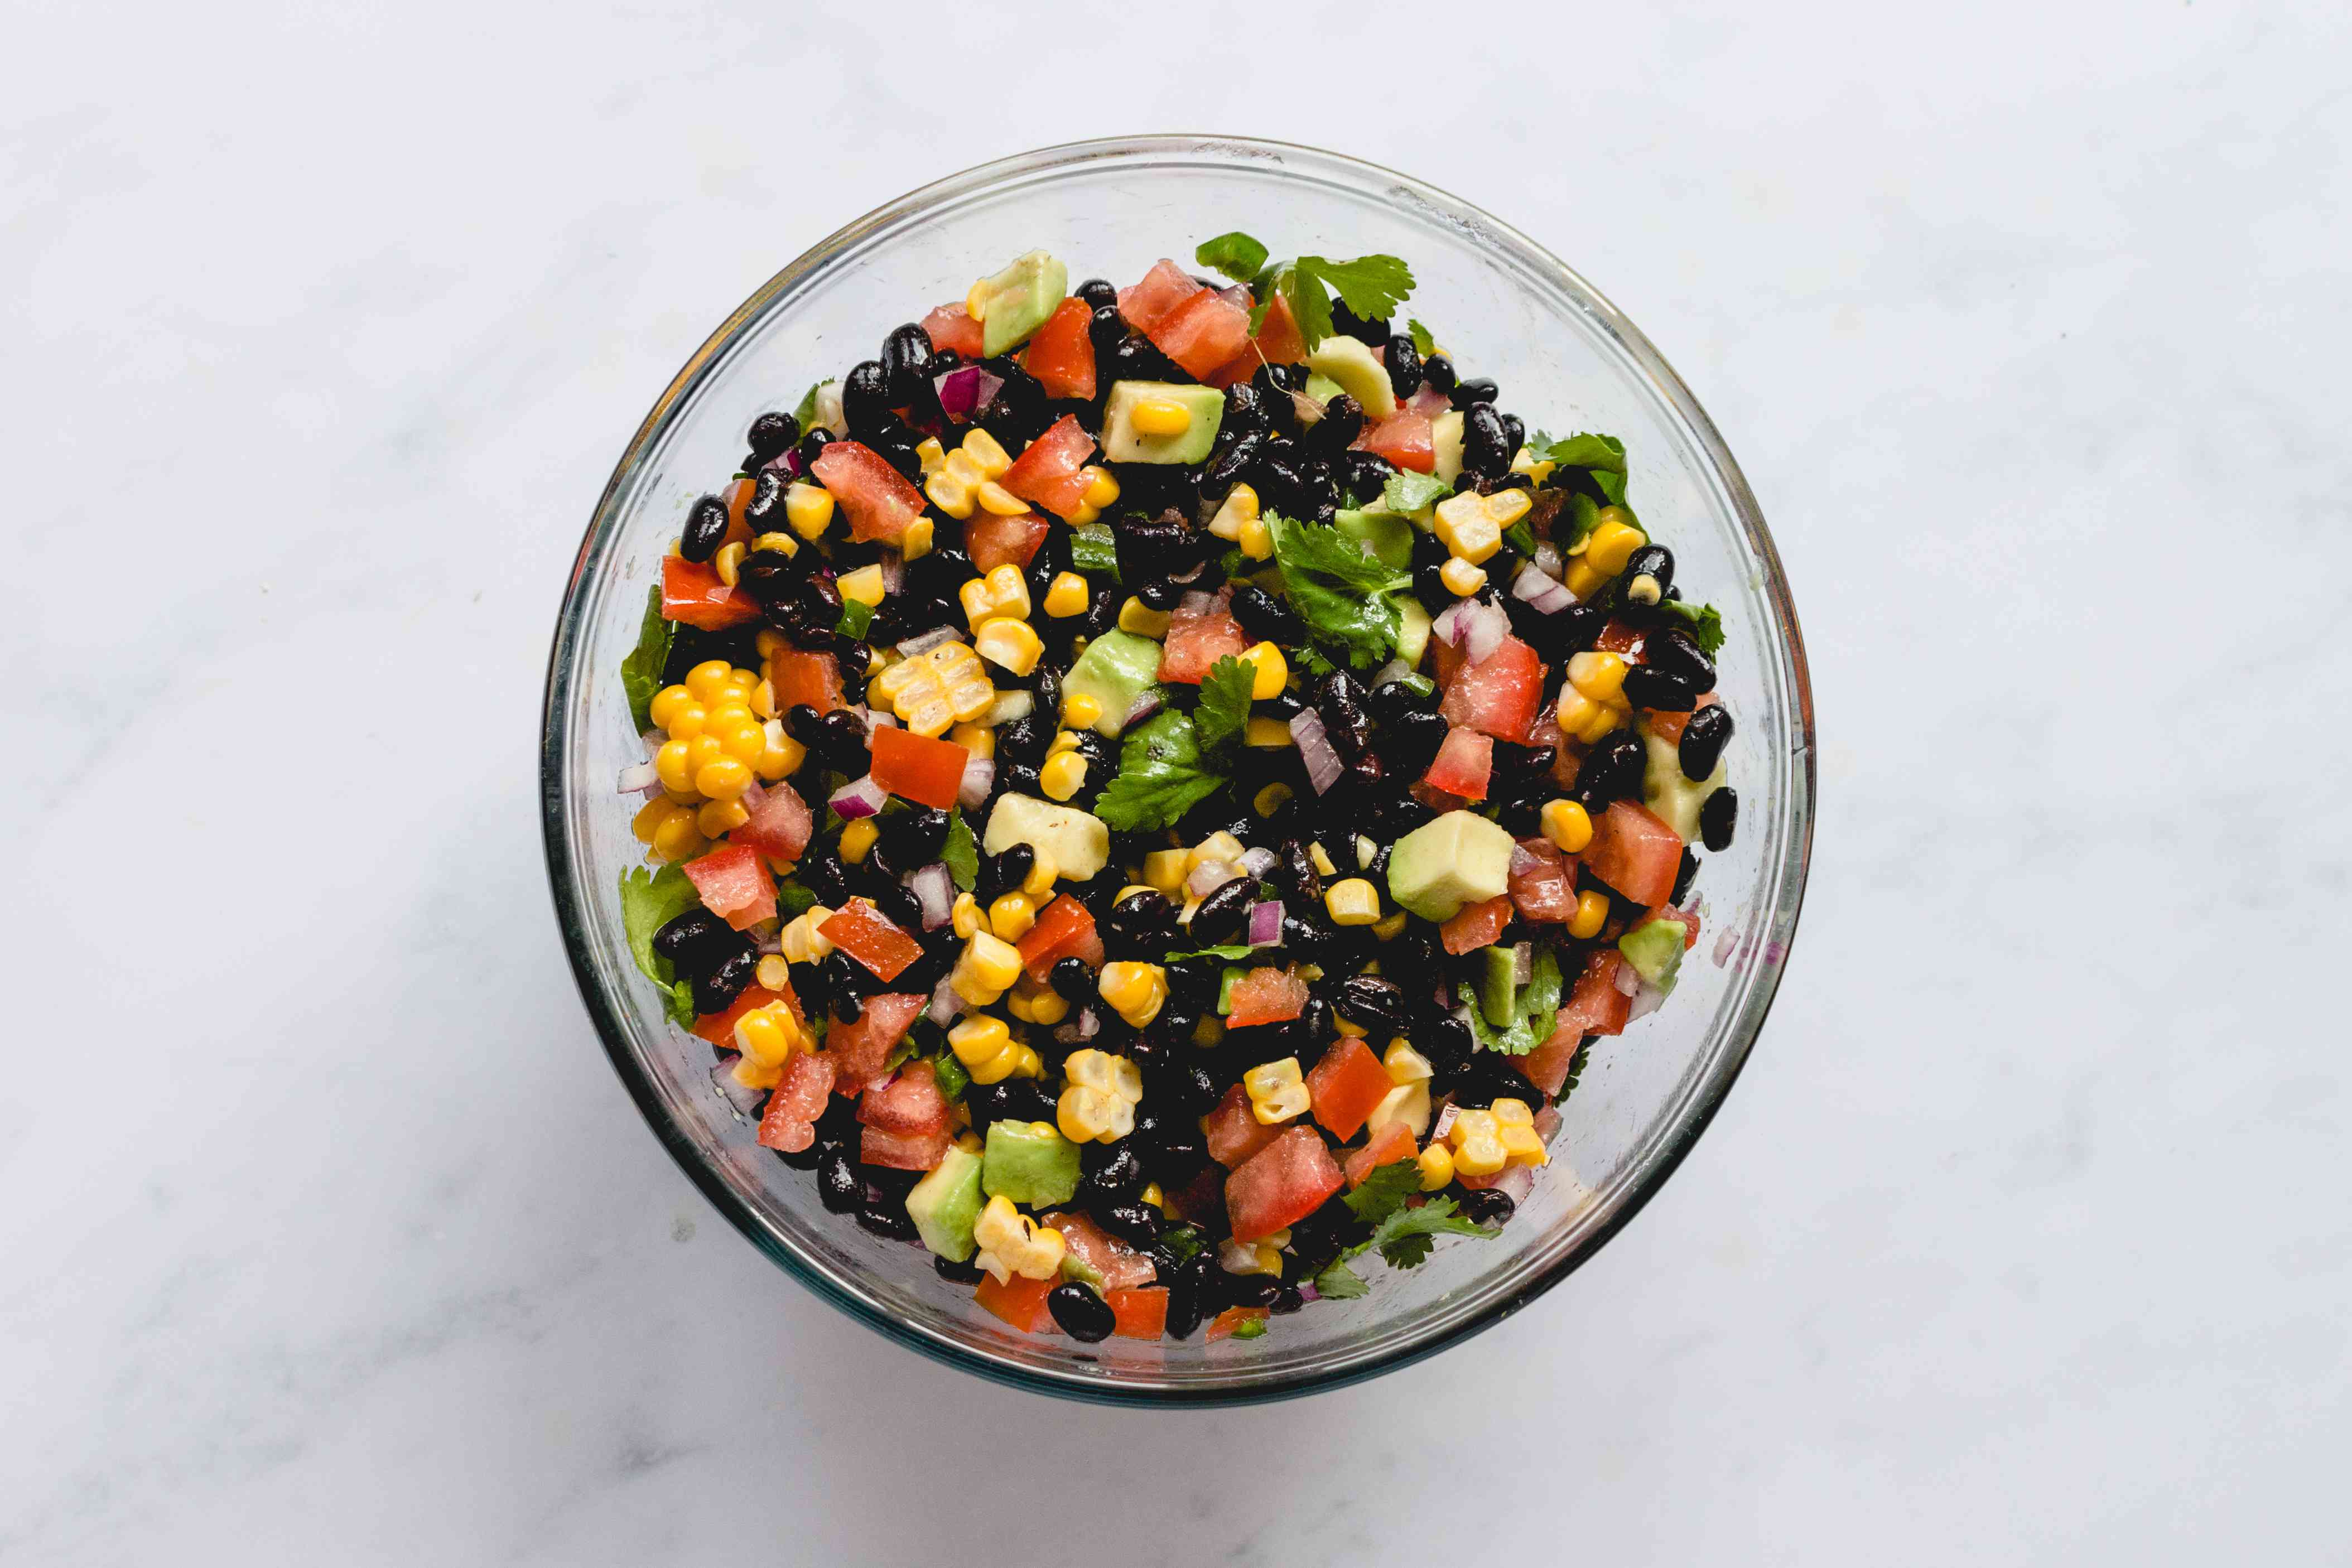 black bean salad ingredients combined in a bowl